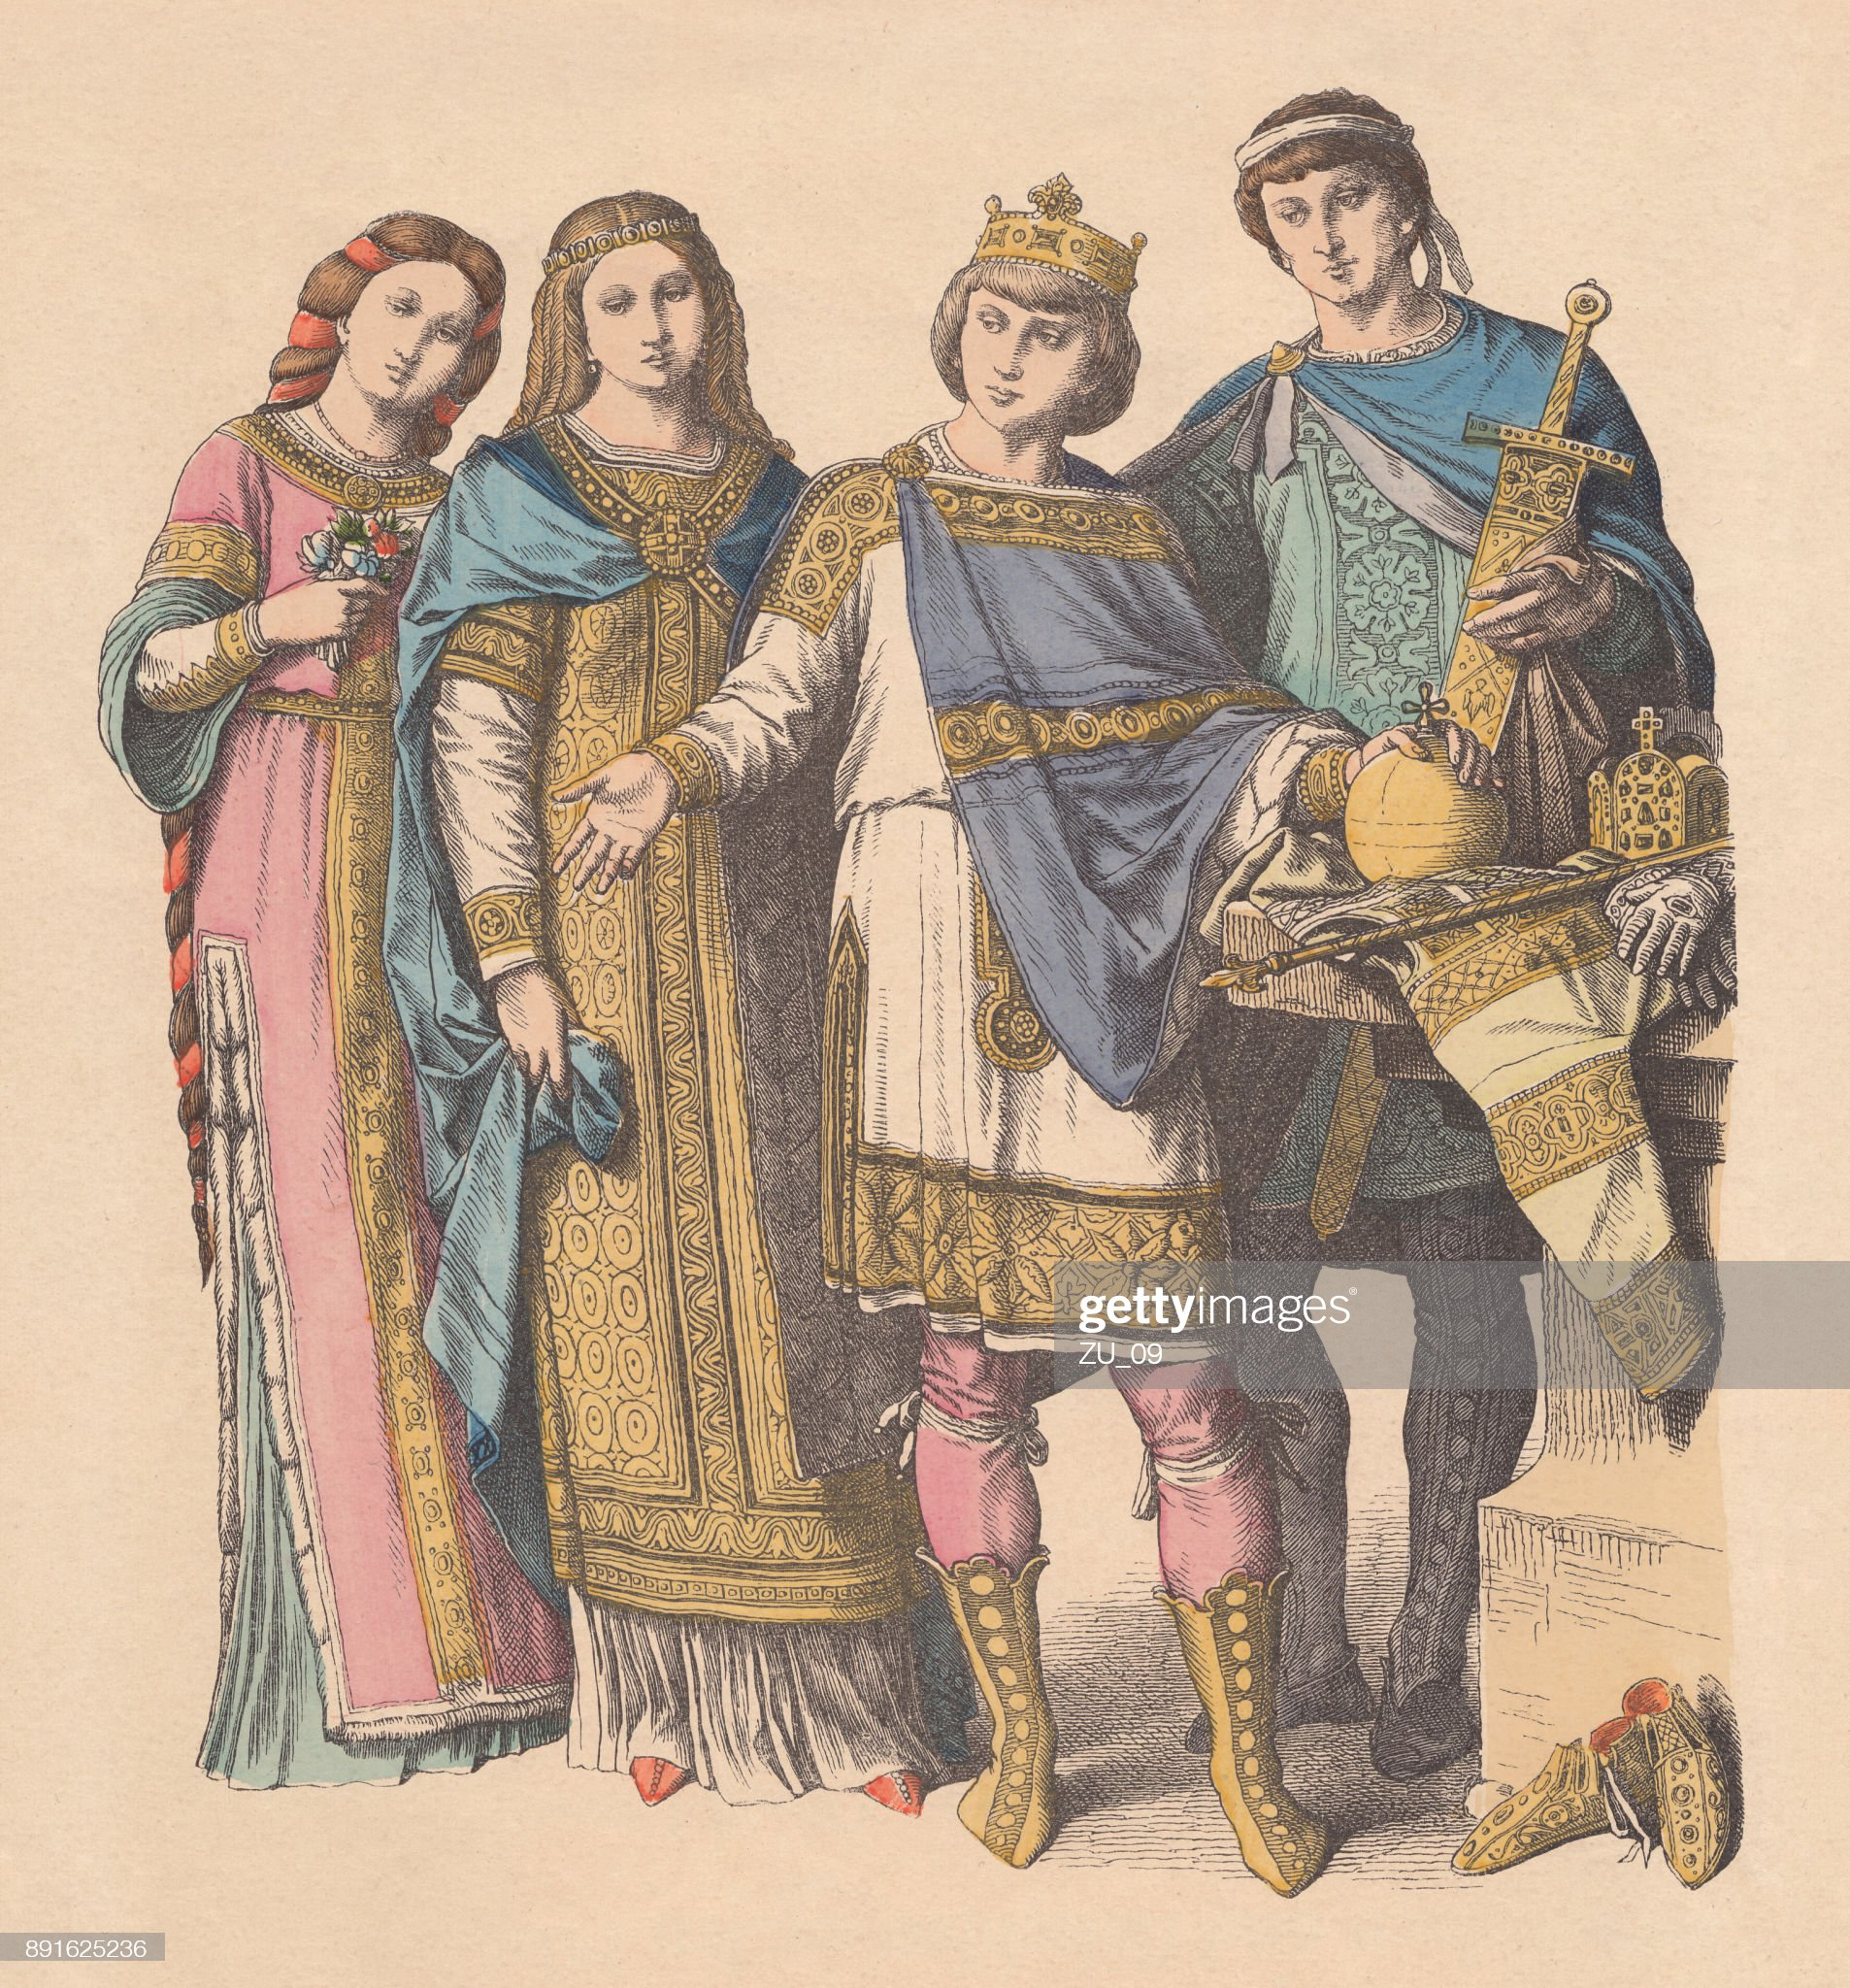 franconian-court-costumes-9th-and-10th-centuries-published-c-1880-illustration-id891625236